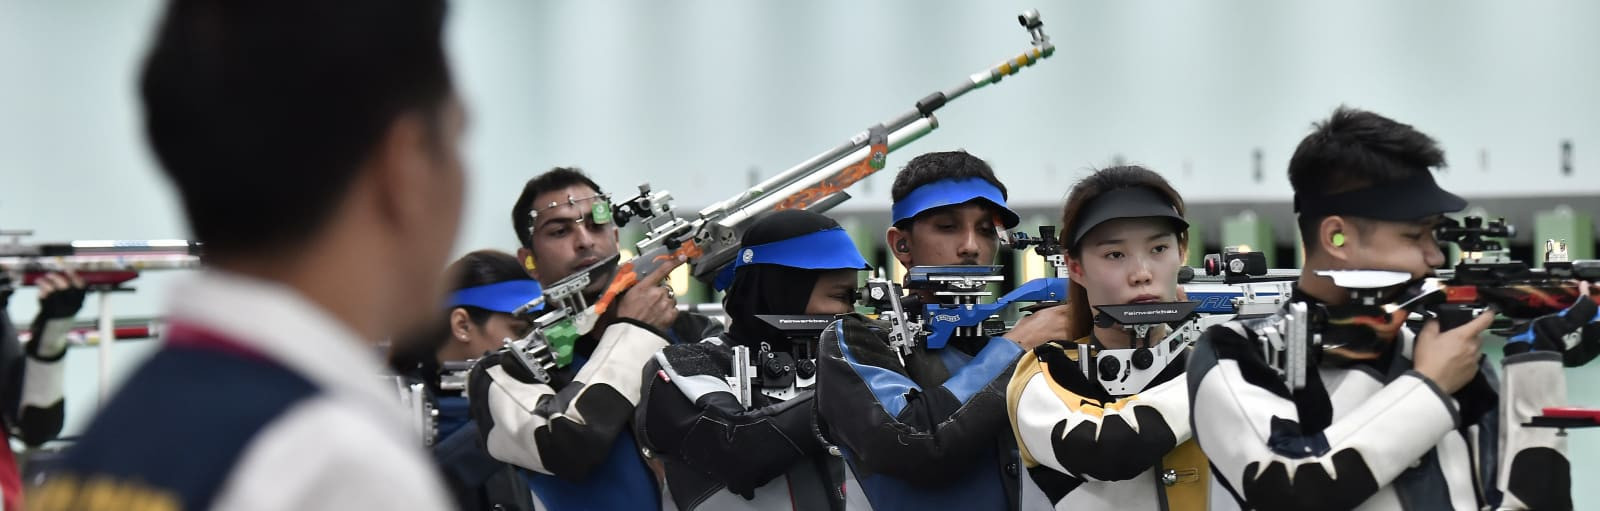 Two gold medals were won today in shooting ©Asian Games 2018